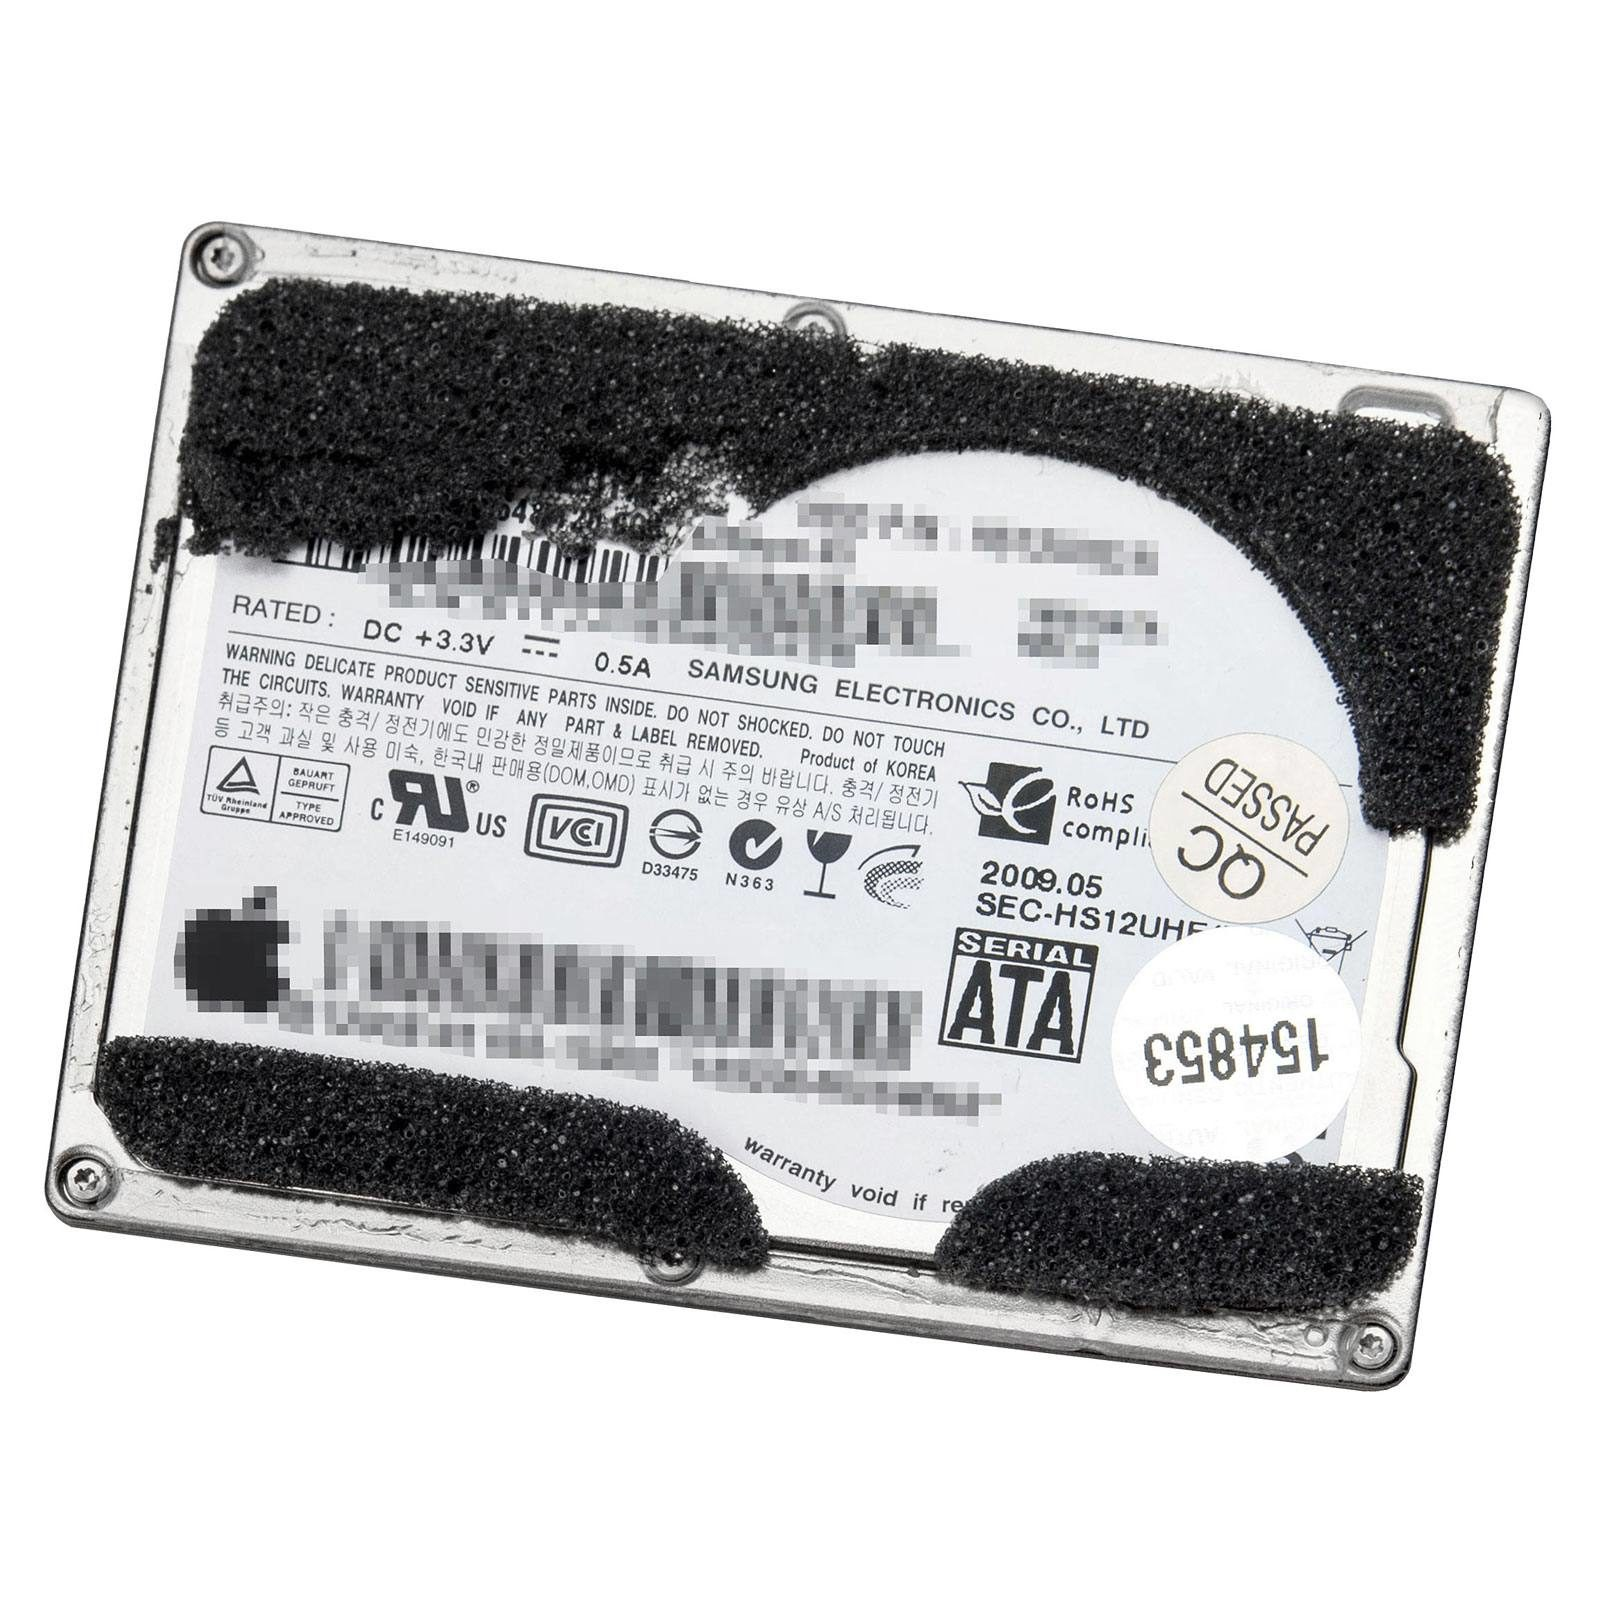 Hard Drive / Solid State Drive – Apple MacBook Air 13″ A1304 (Late 2008,  Mid 2009)